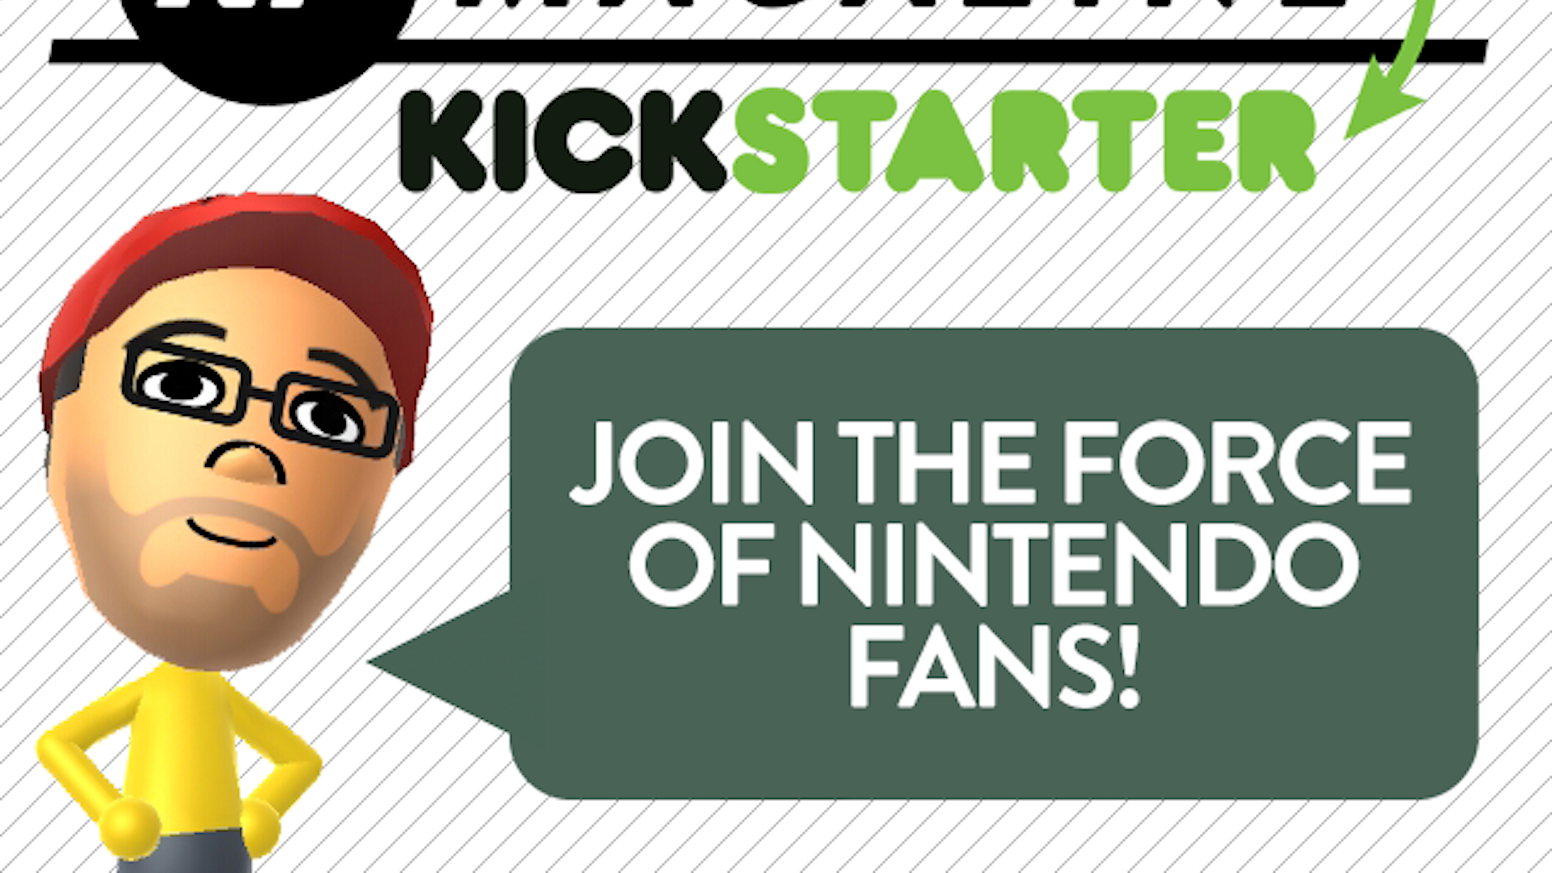 NF Magazine is the new source for Nintendo video game coverage delivered both digitally and in print. Subscribe to help us fund Year 2!